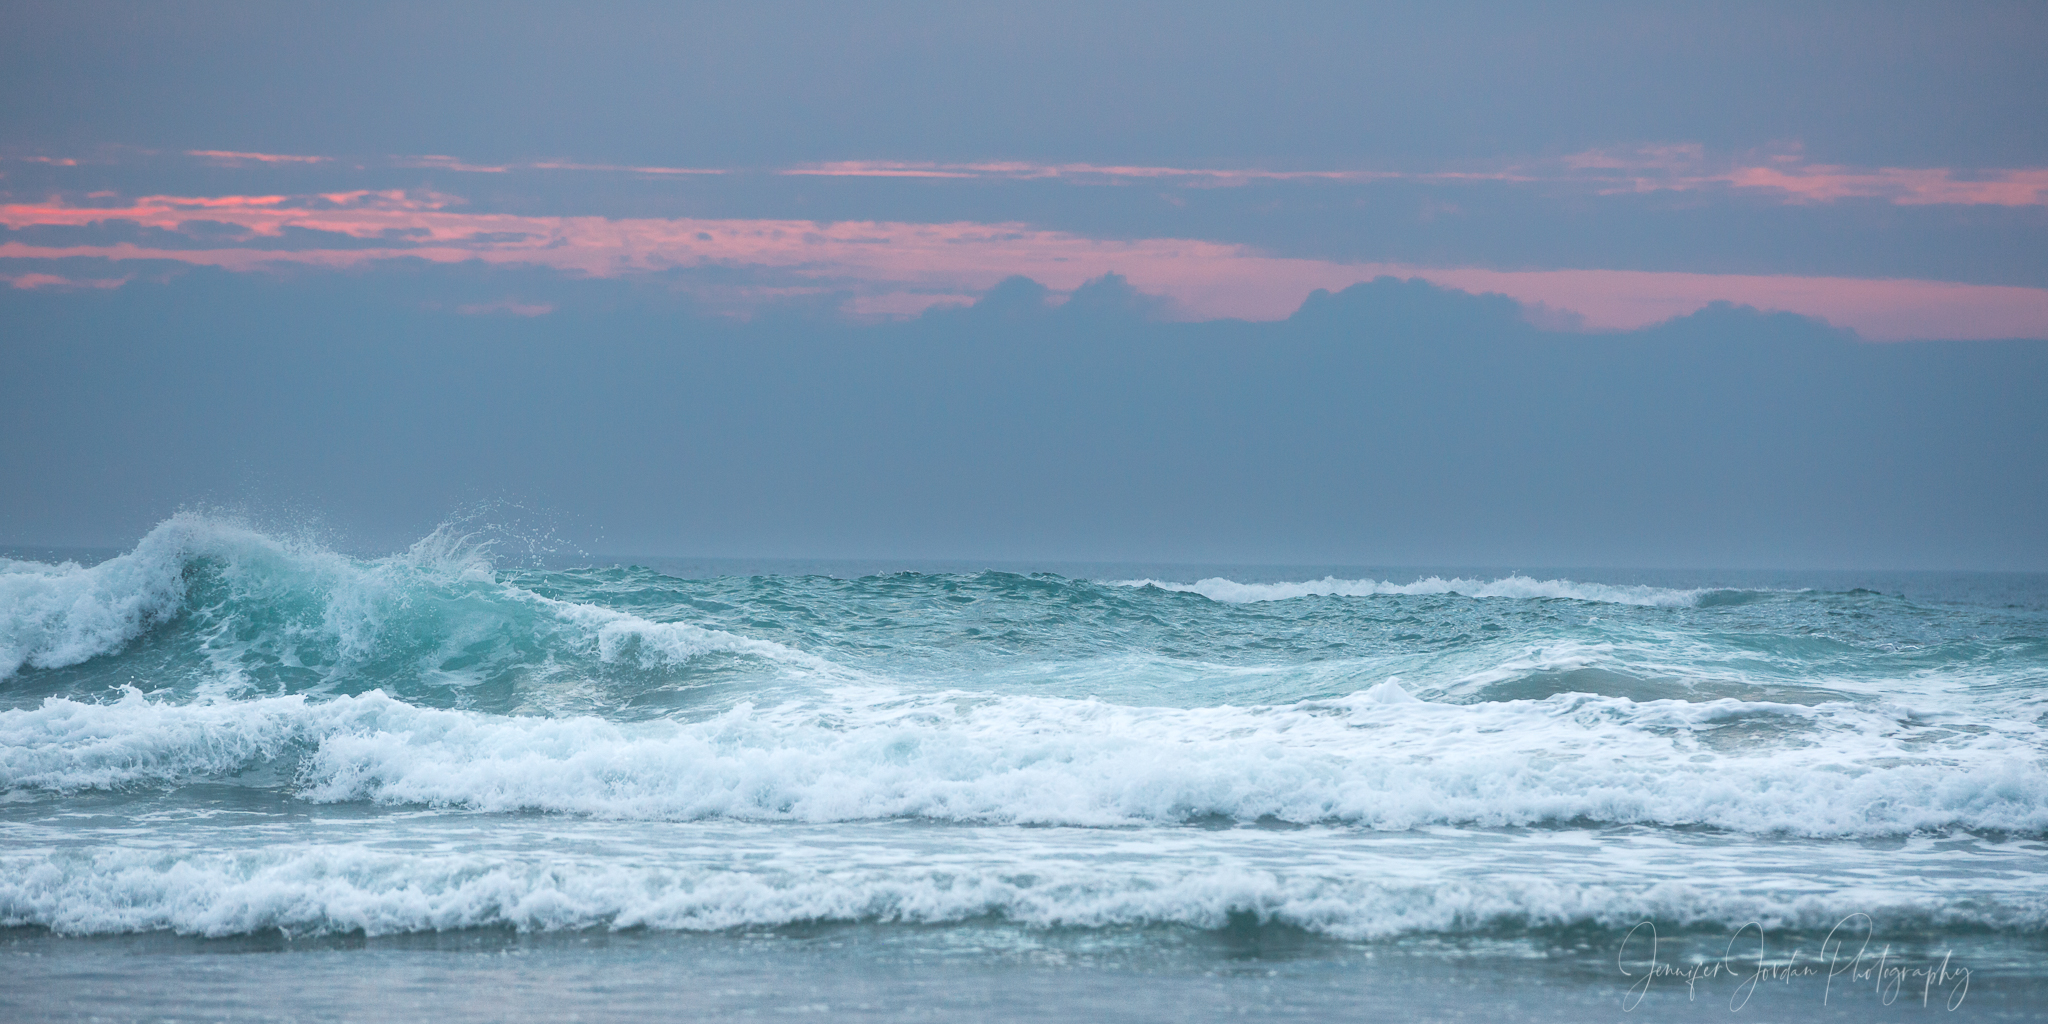 Fine Art Ocean Photography by Jennifer Jordan Photography